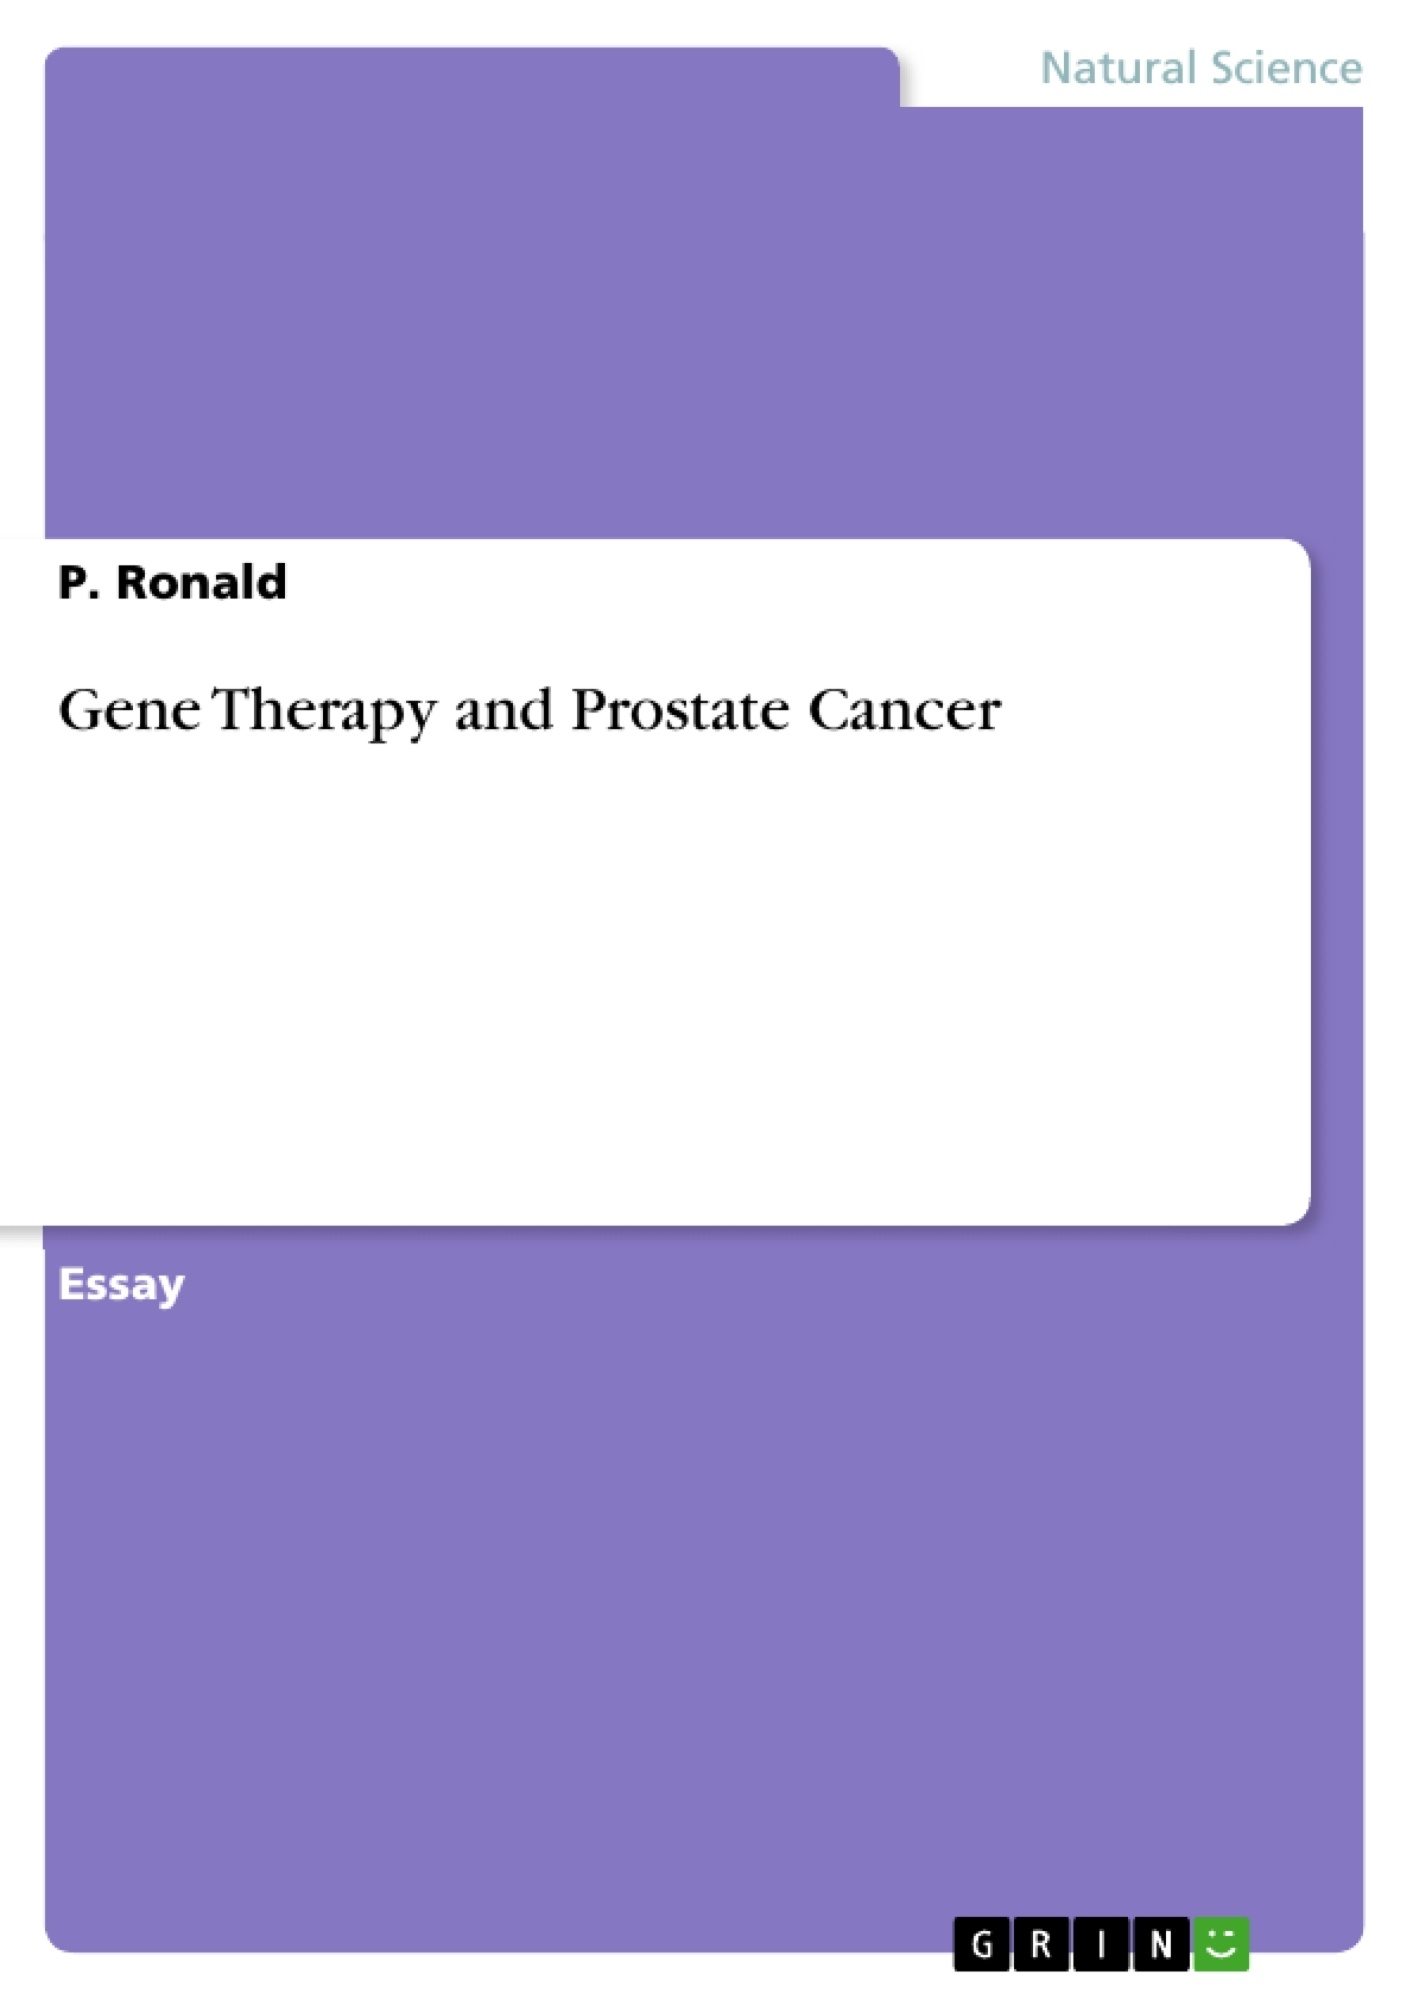 Title: Gene Therapy and Prostate Cancer